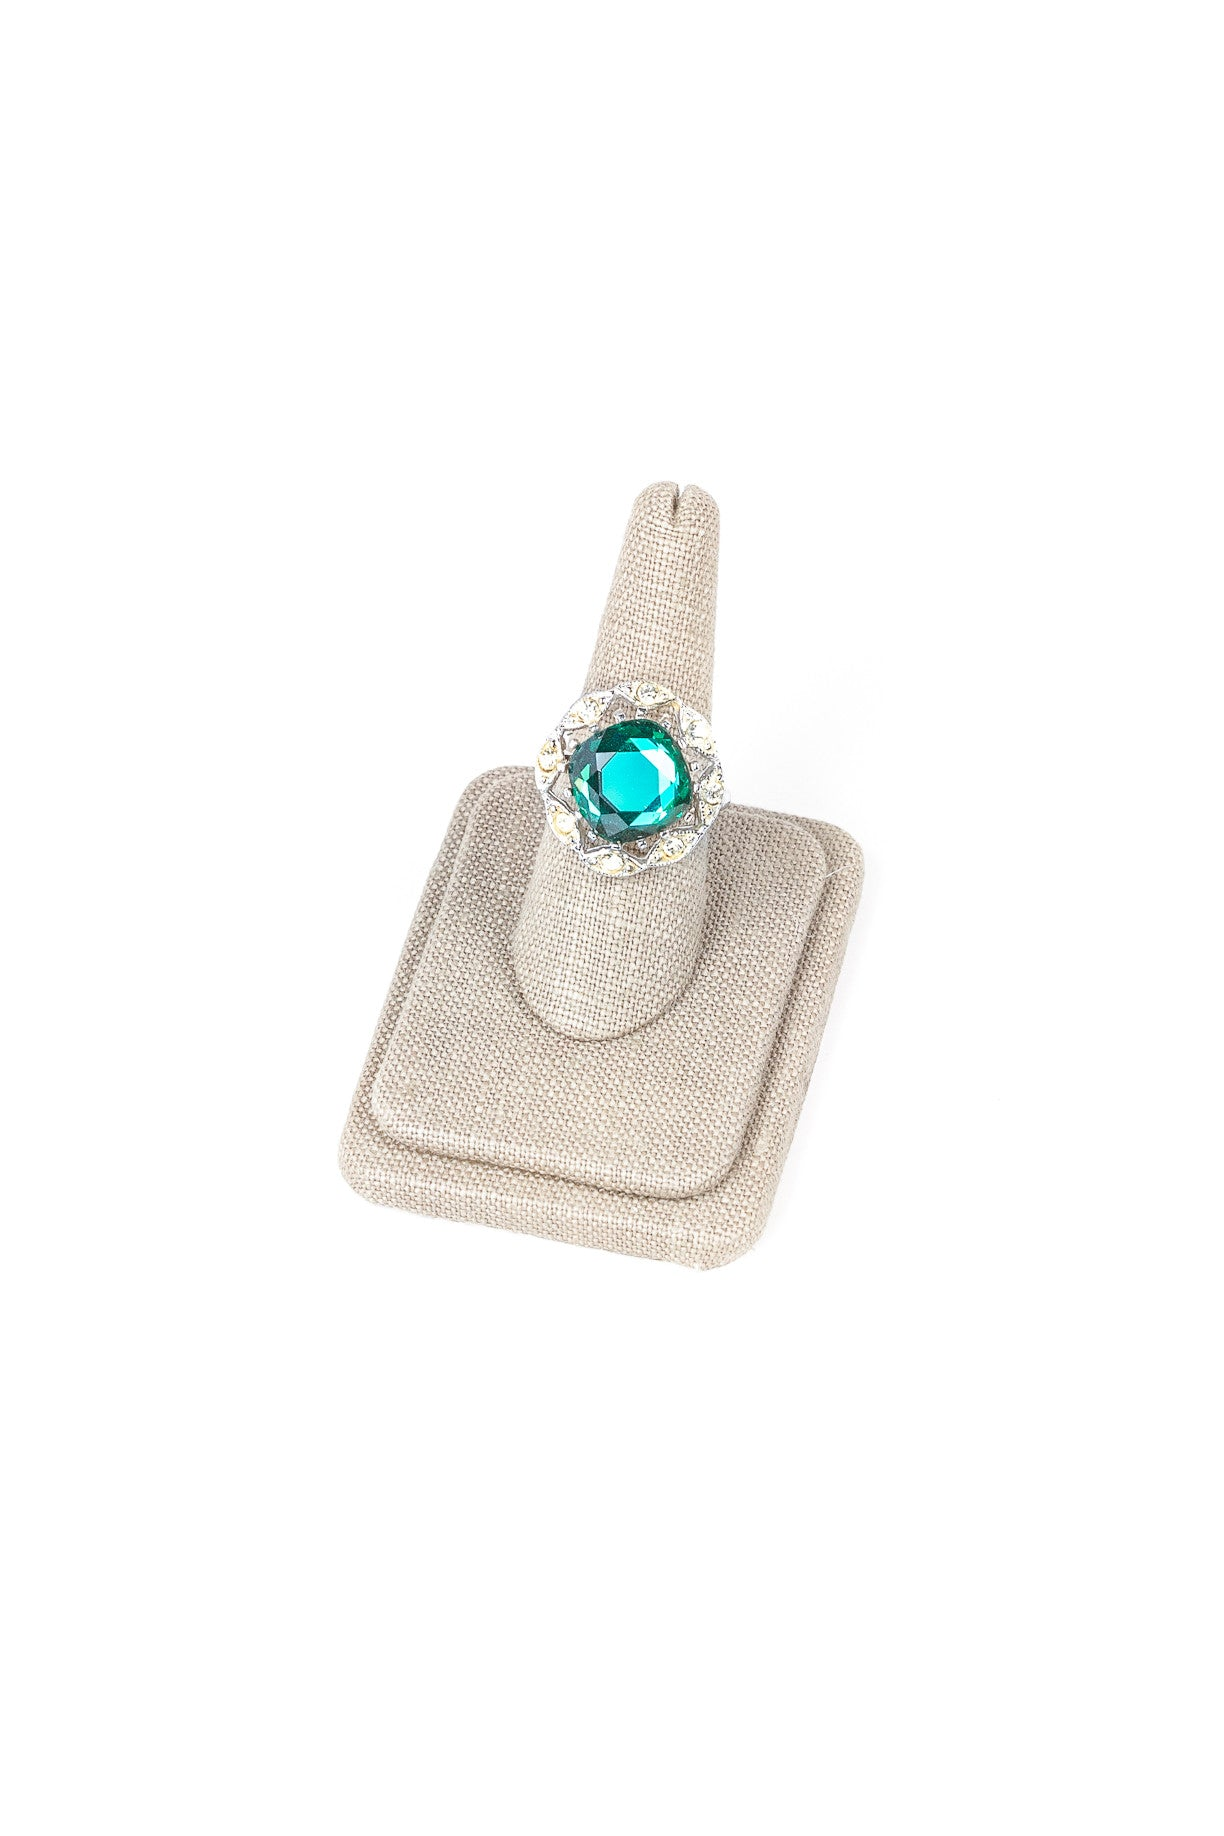 70's__Sarah Coventry__Adjustable Emerald Ring